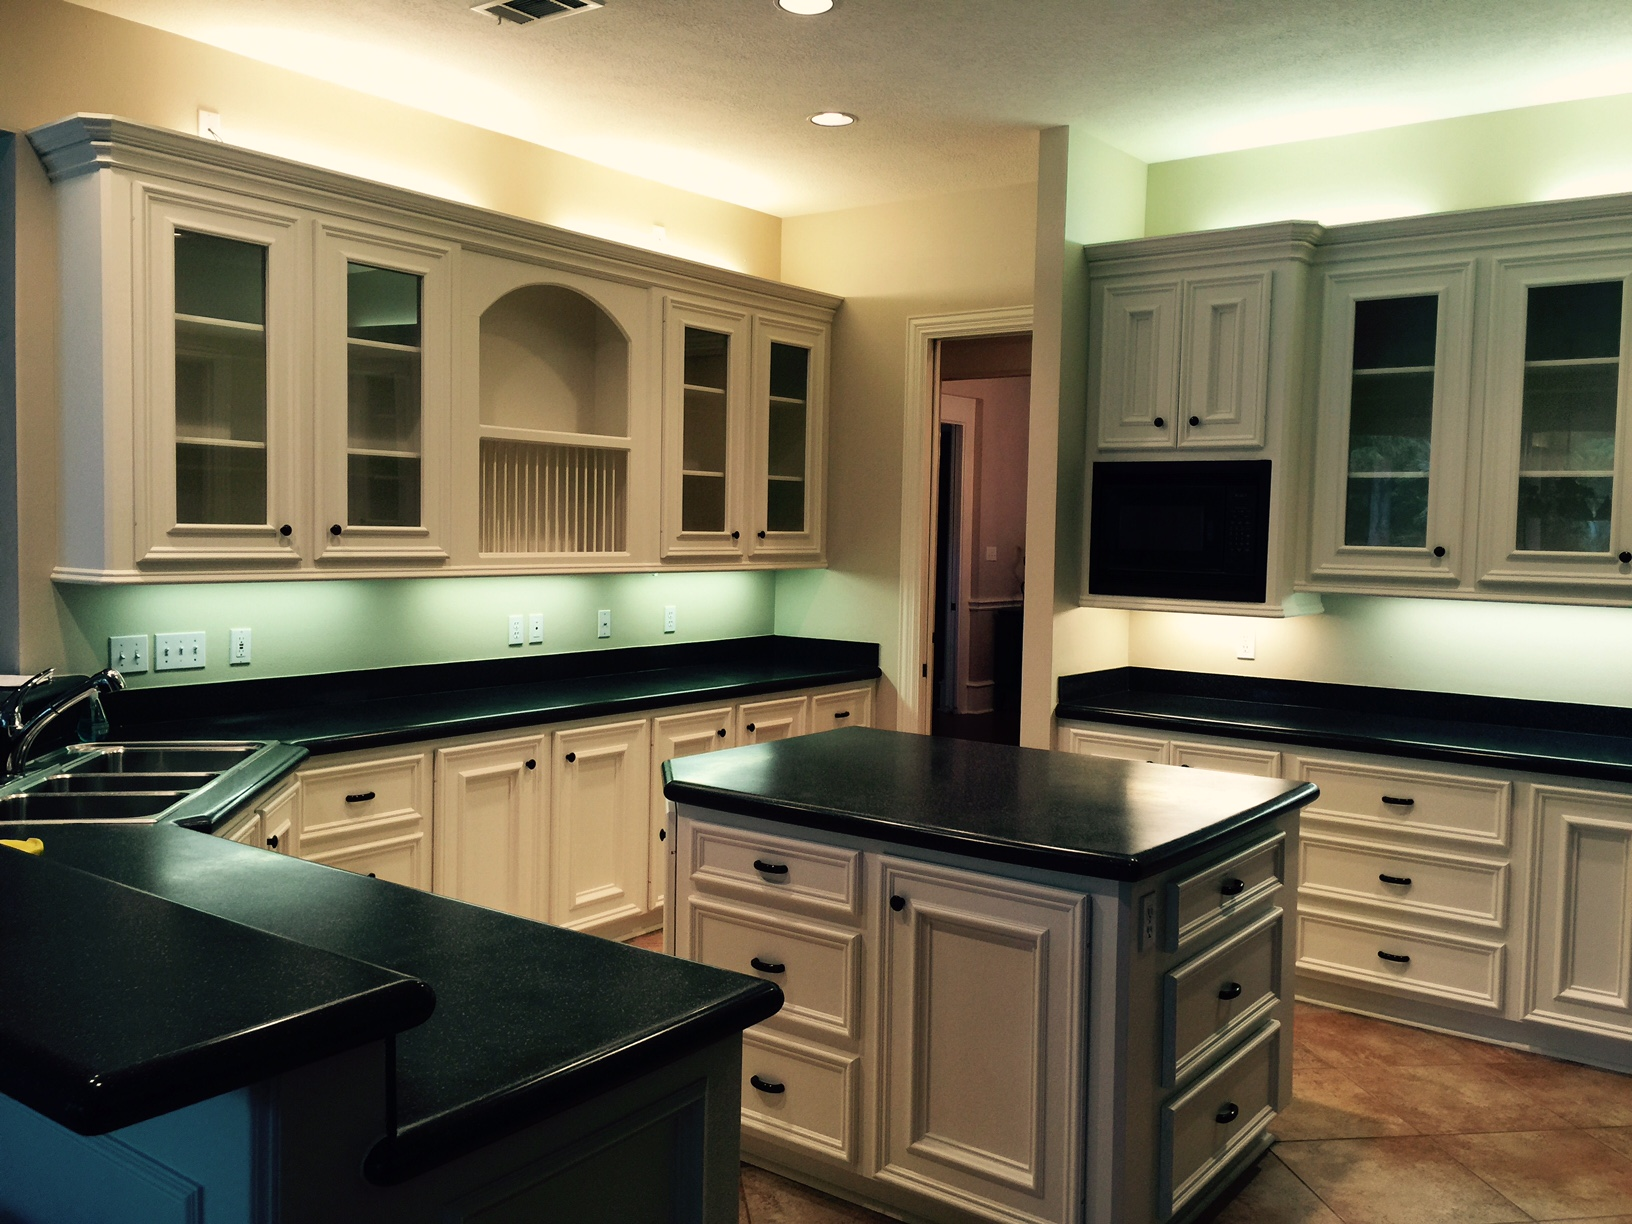 Here's a good example of how different types of lighting can turn a white kitchen all kinds of different colors. (This was a pre-project photo.)